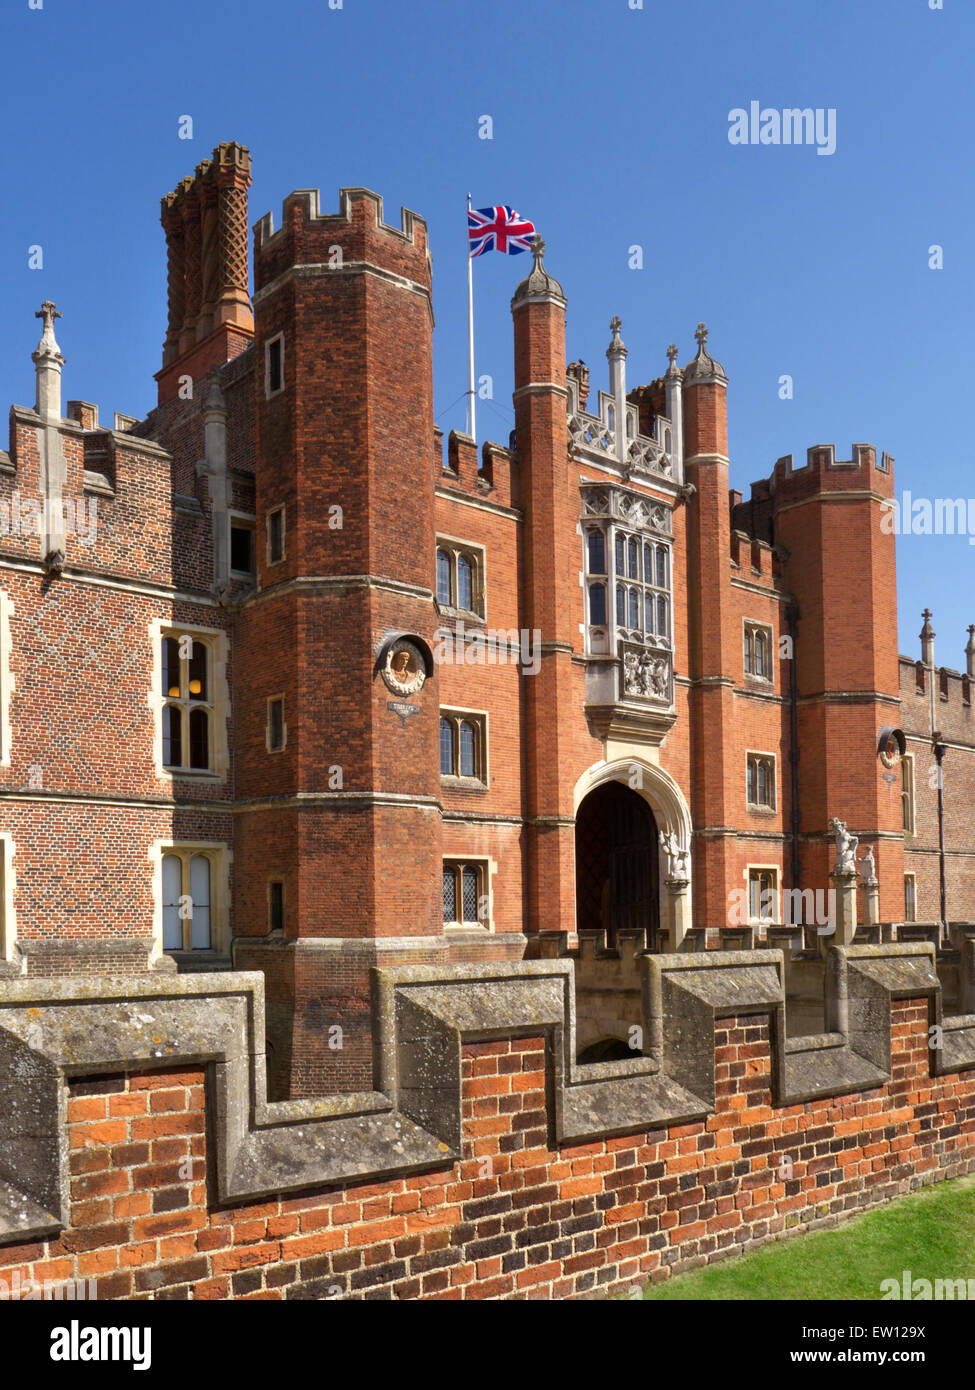 Hampton Court Palace a royal palace in the London Borough of Richmond upon Thames Greater London Surrey UK - Stock Image